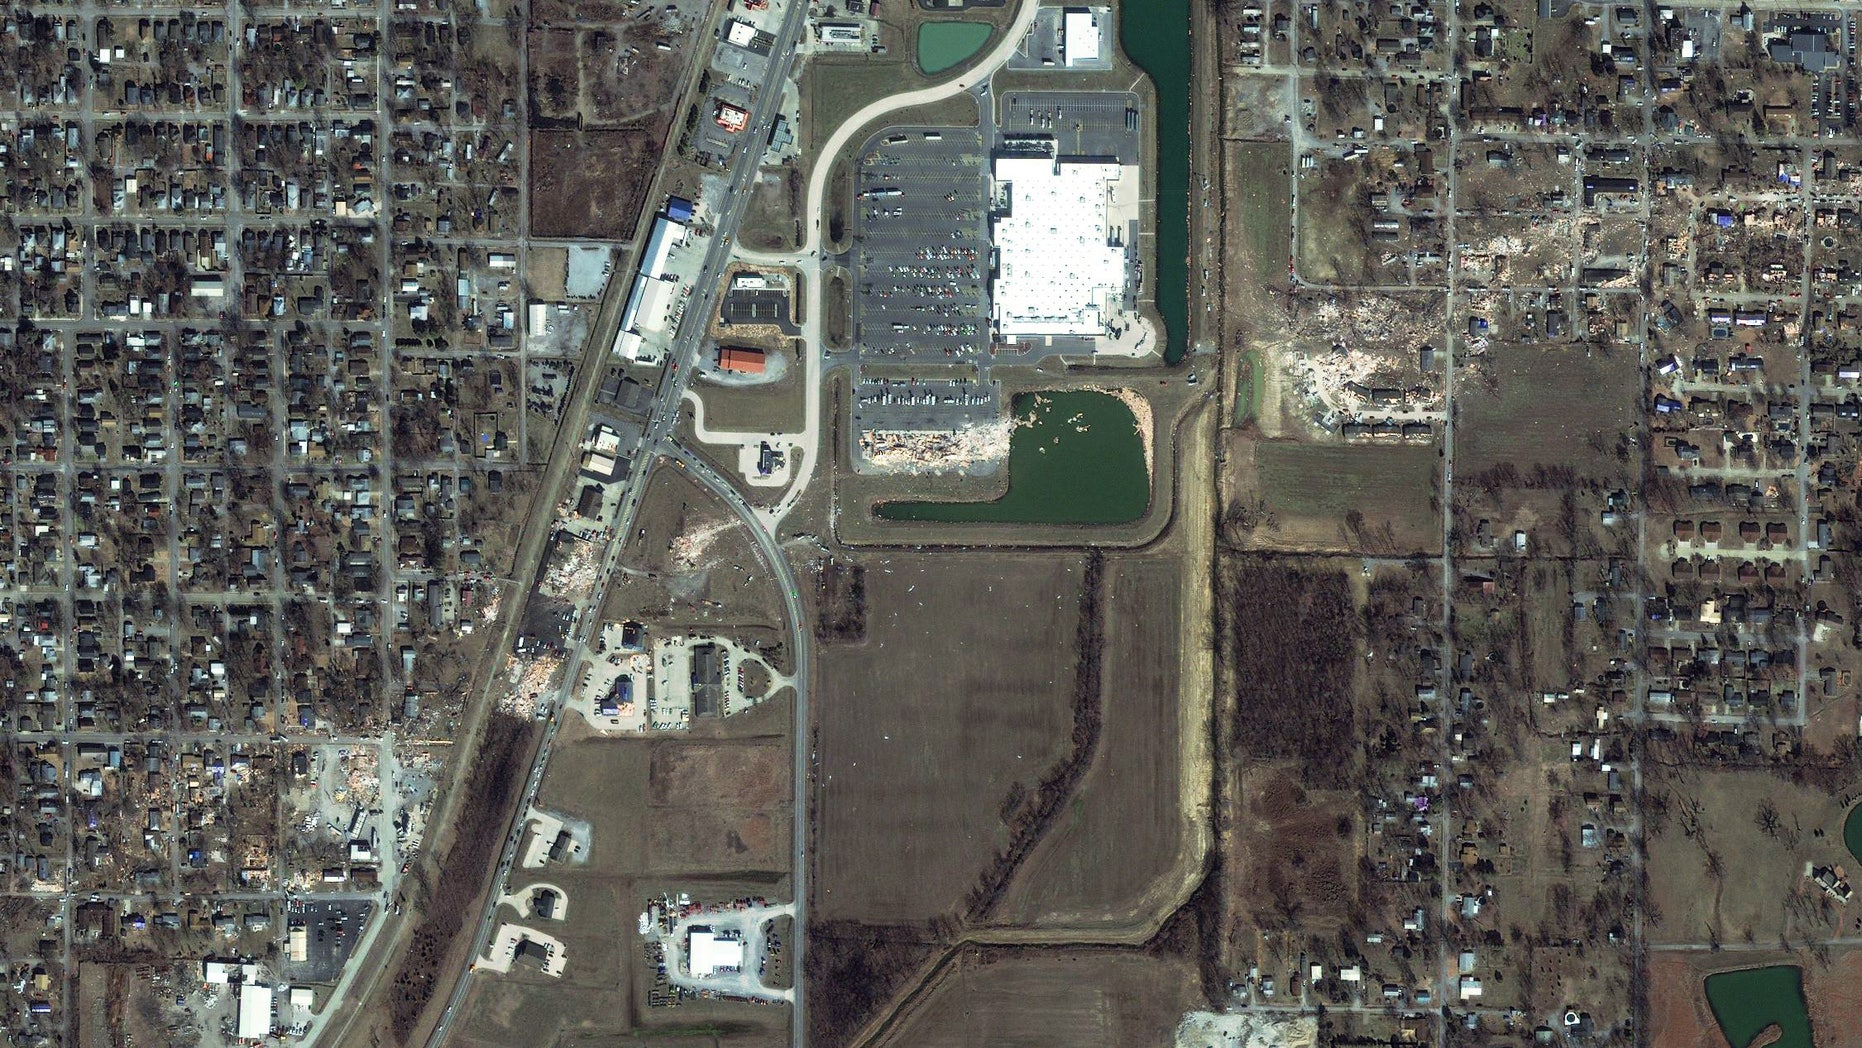 March 1: This satellite image provided by GeoEye shows the path of a tornado, diagonal from bottom left to upper right, which struck Harrisburg, Ill.